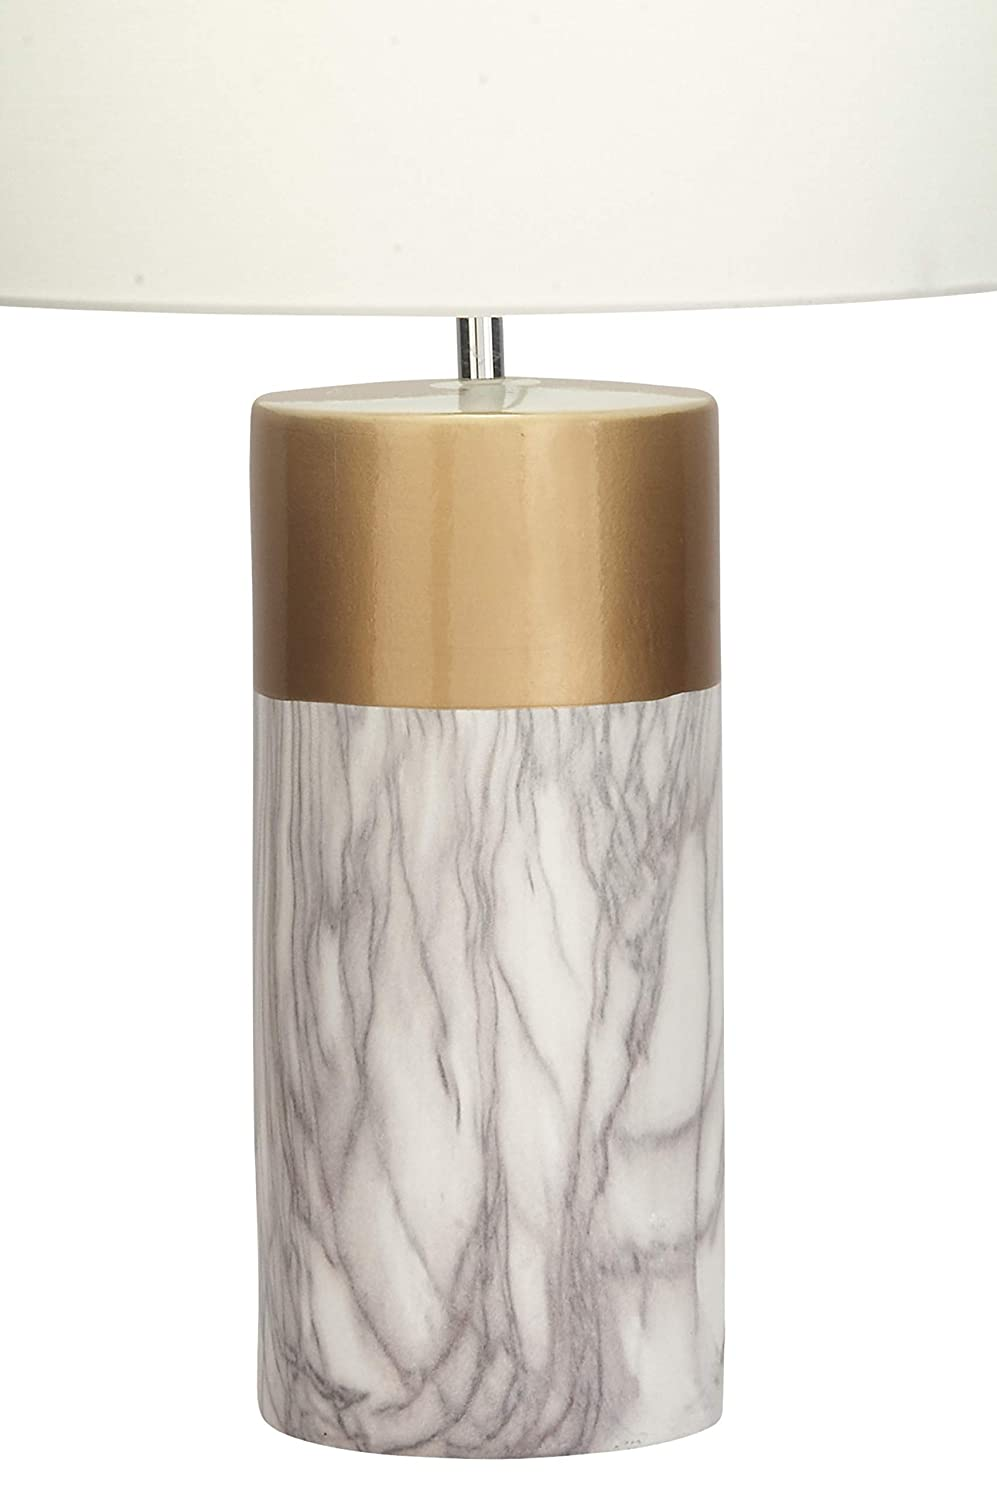 "15/"" x 24/"" Deco 79 60739 Large Cylinder-Shaped White Marble Table Lamp with Metallic Gold Trim /& White Drum Shade"